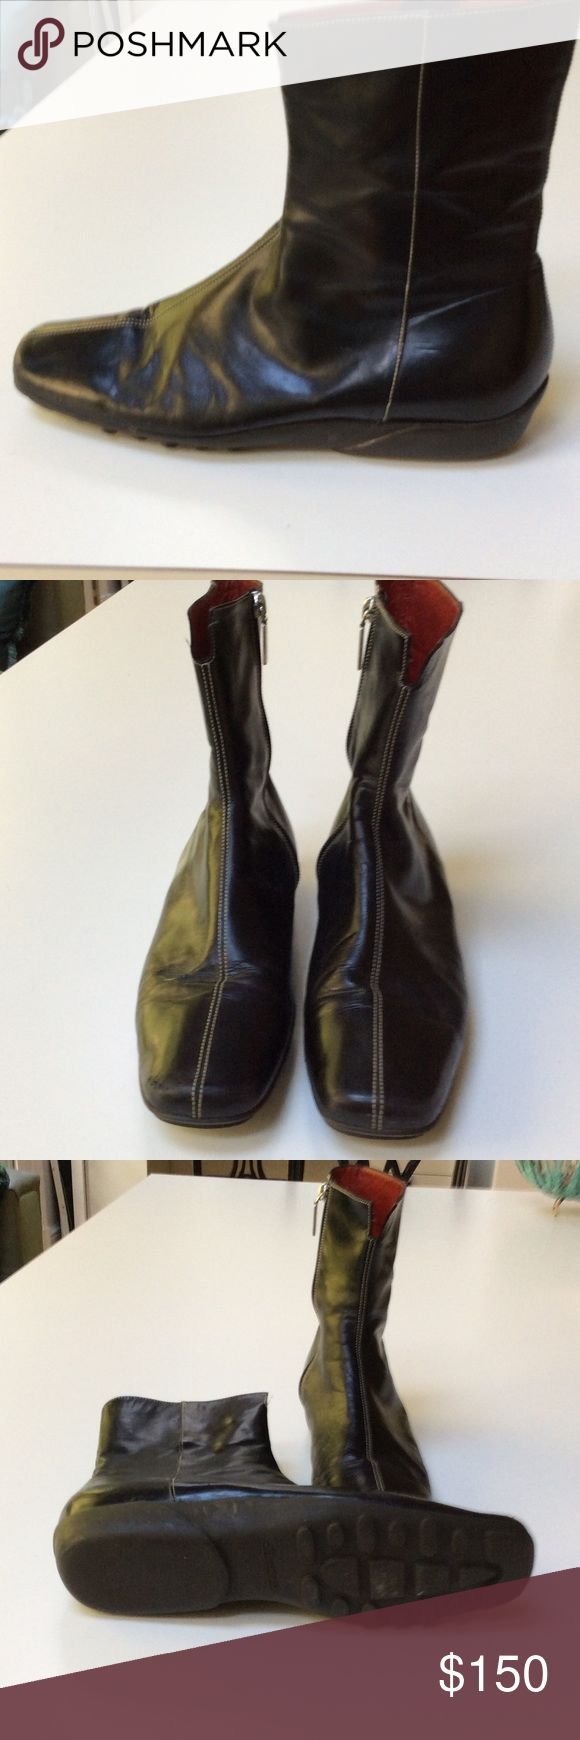 Santoni booties Black leather. White top stitching. Rubber soles. 1in. heel. 8 in. tall Santoni Shoes Ankle Boots & Booties